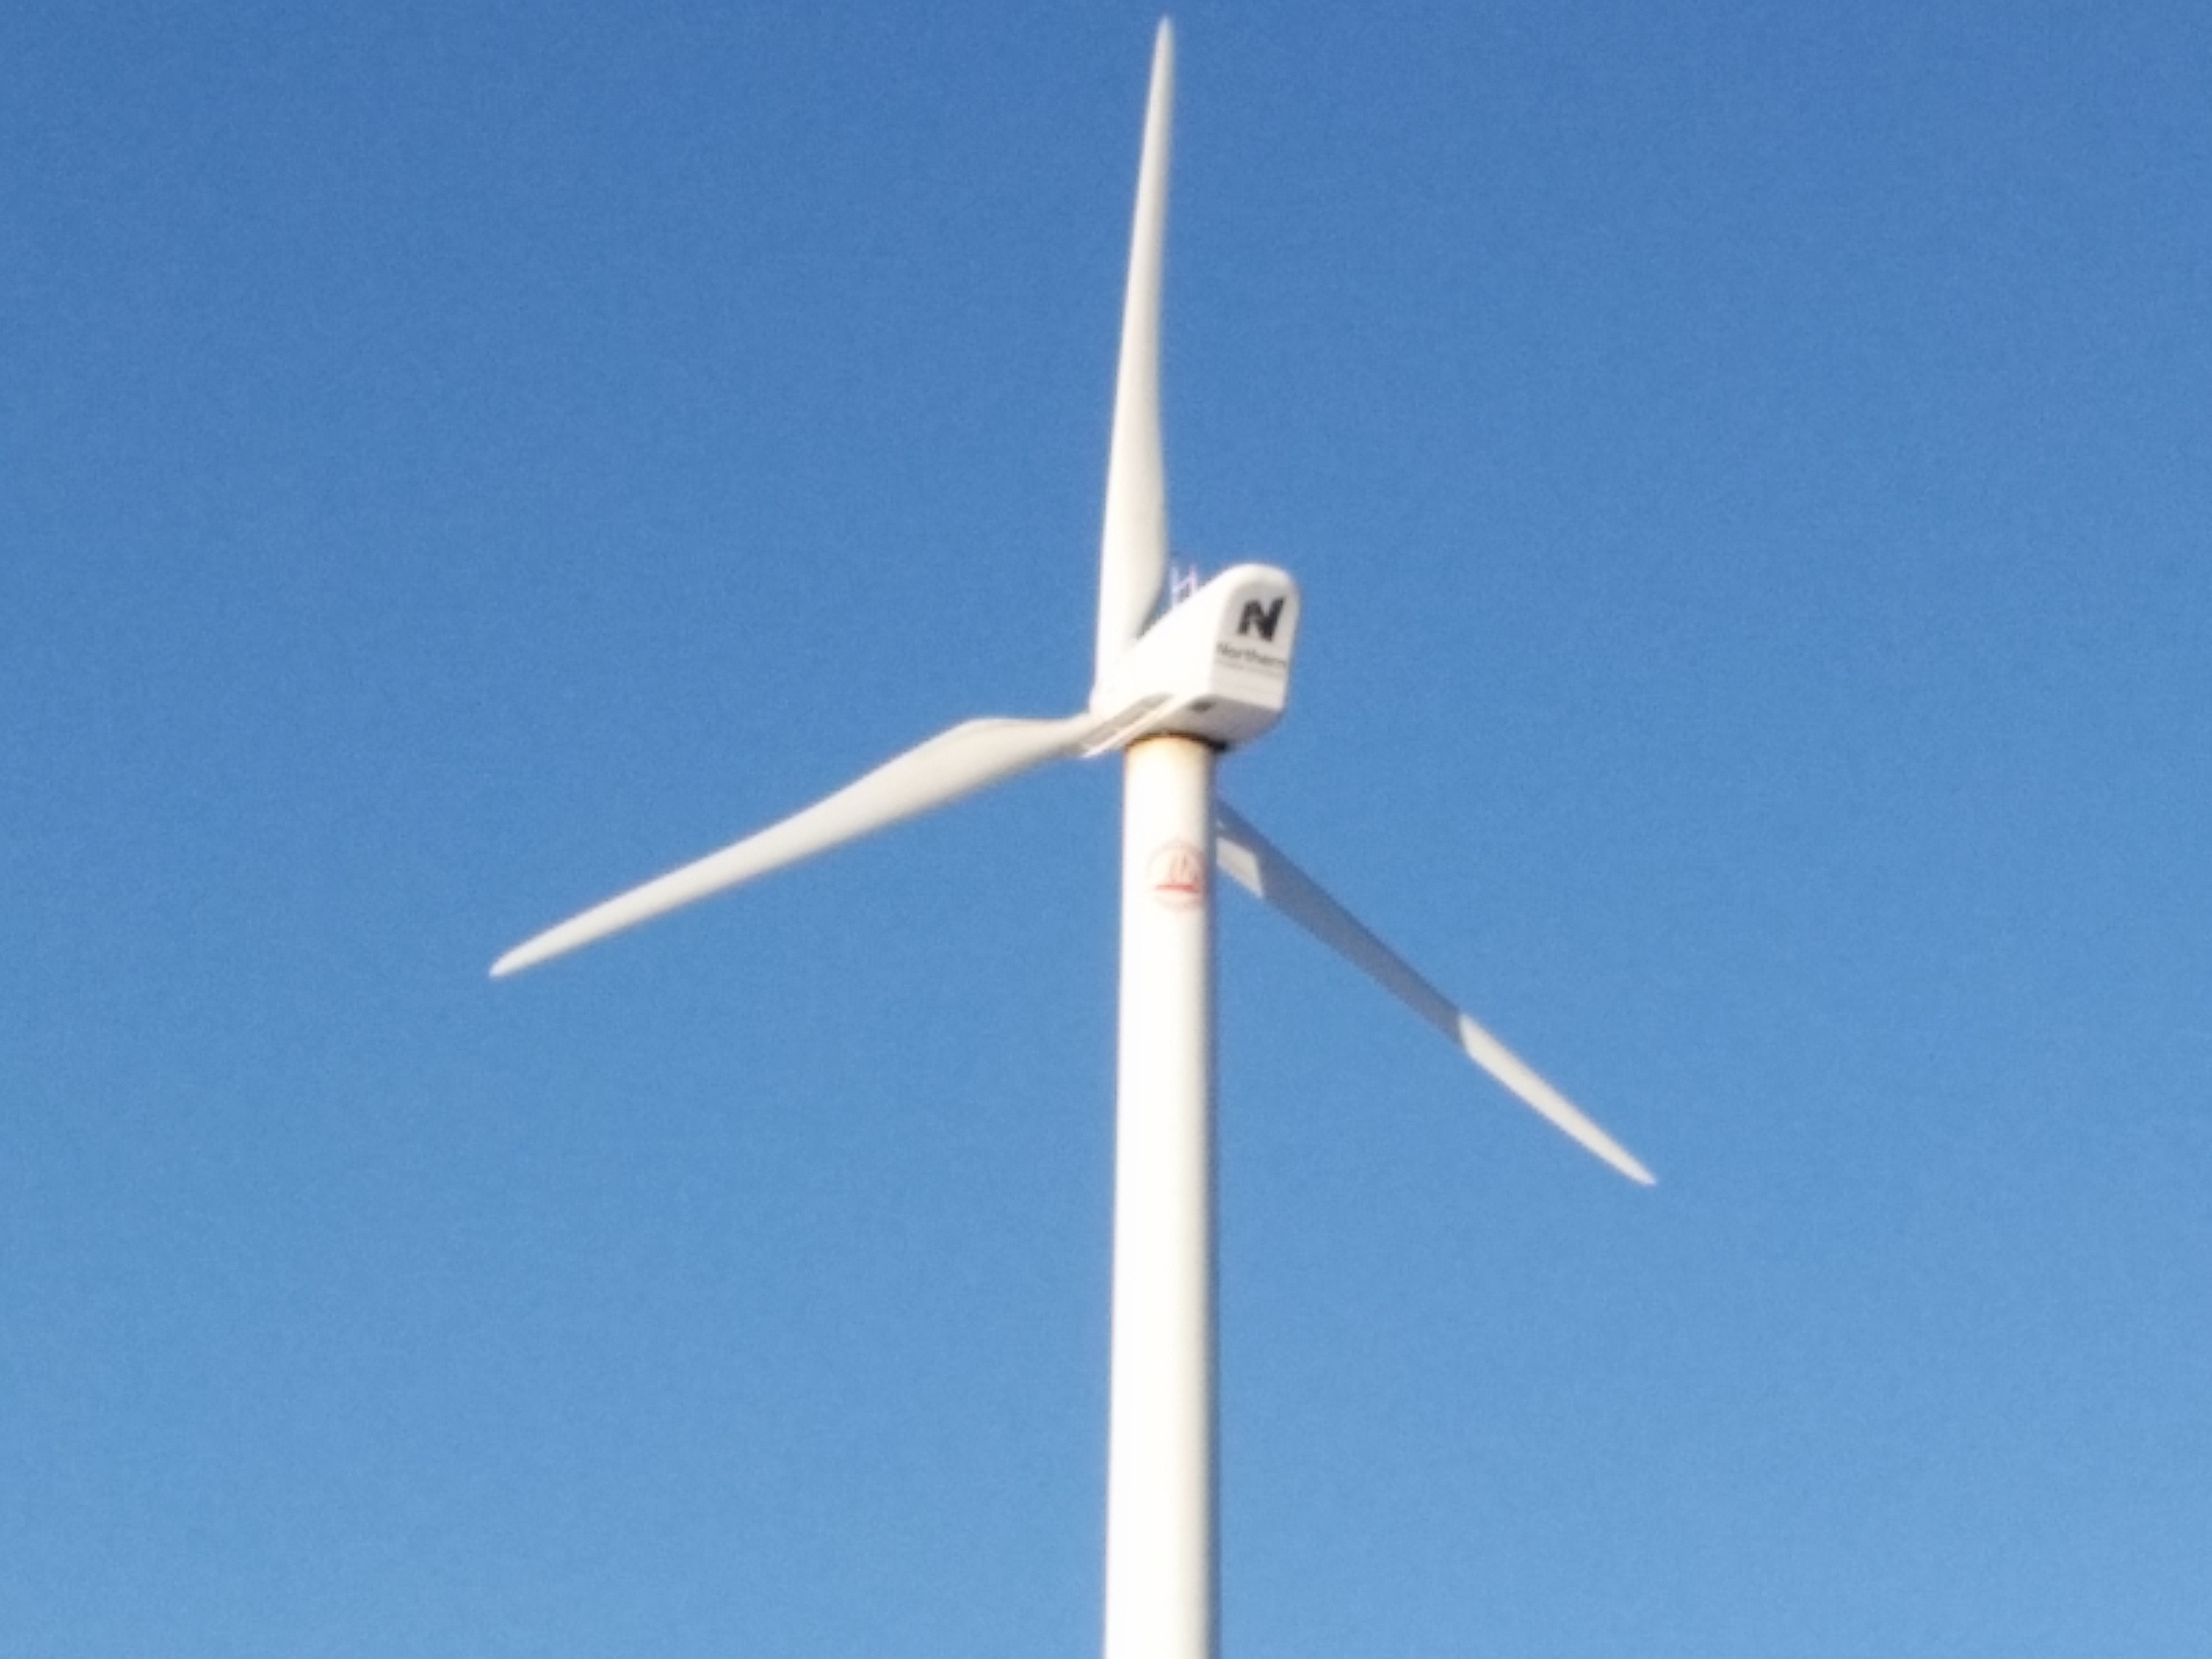 100 kW Wind Turbine Interconnected to Utility Grid Through Building ...